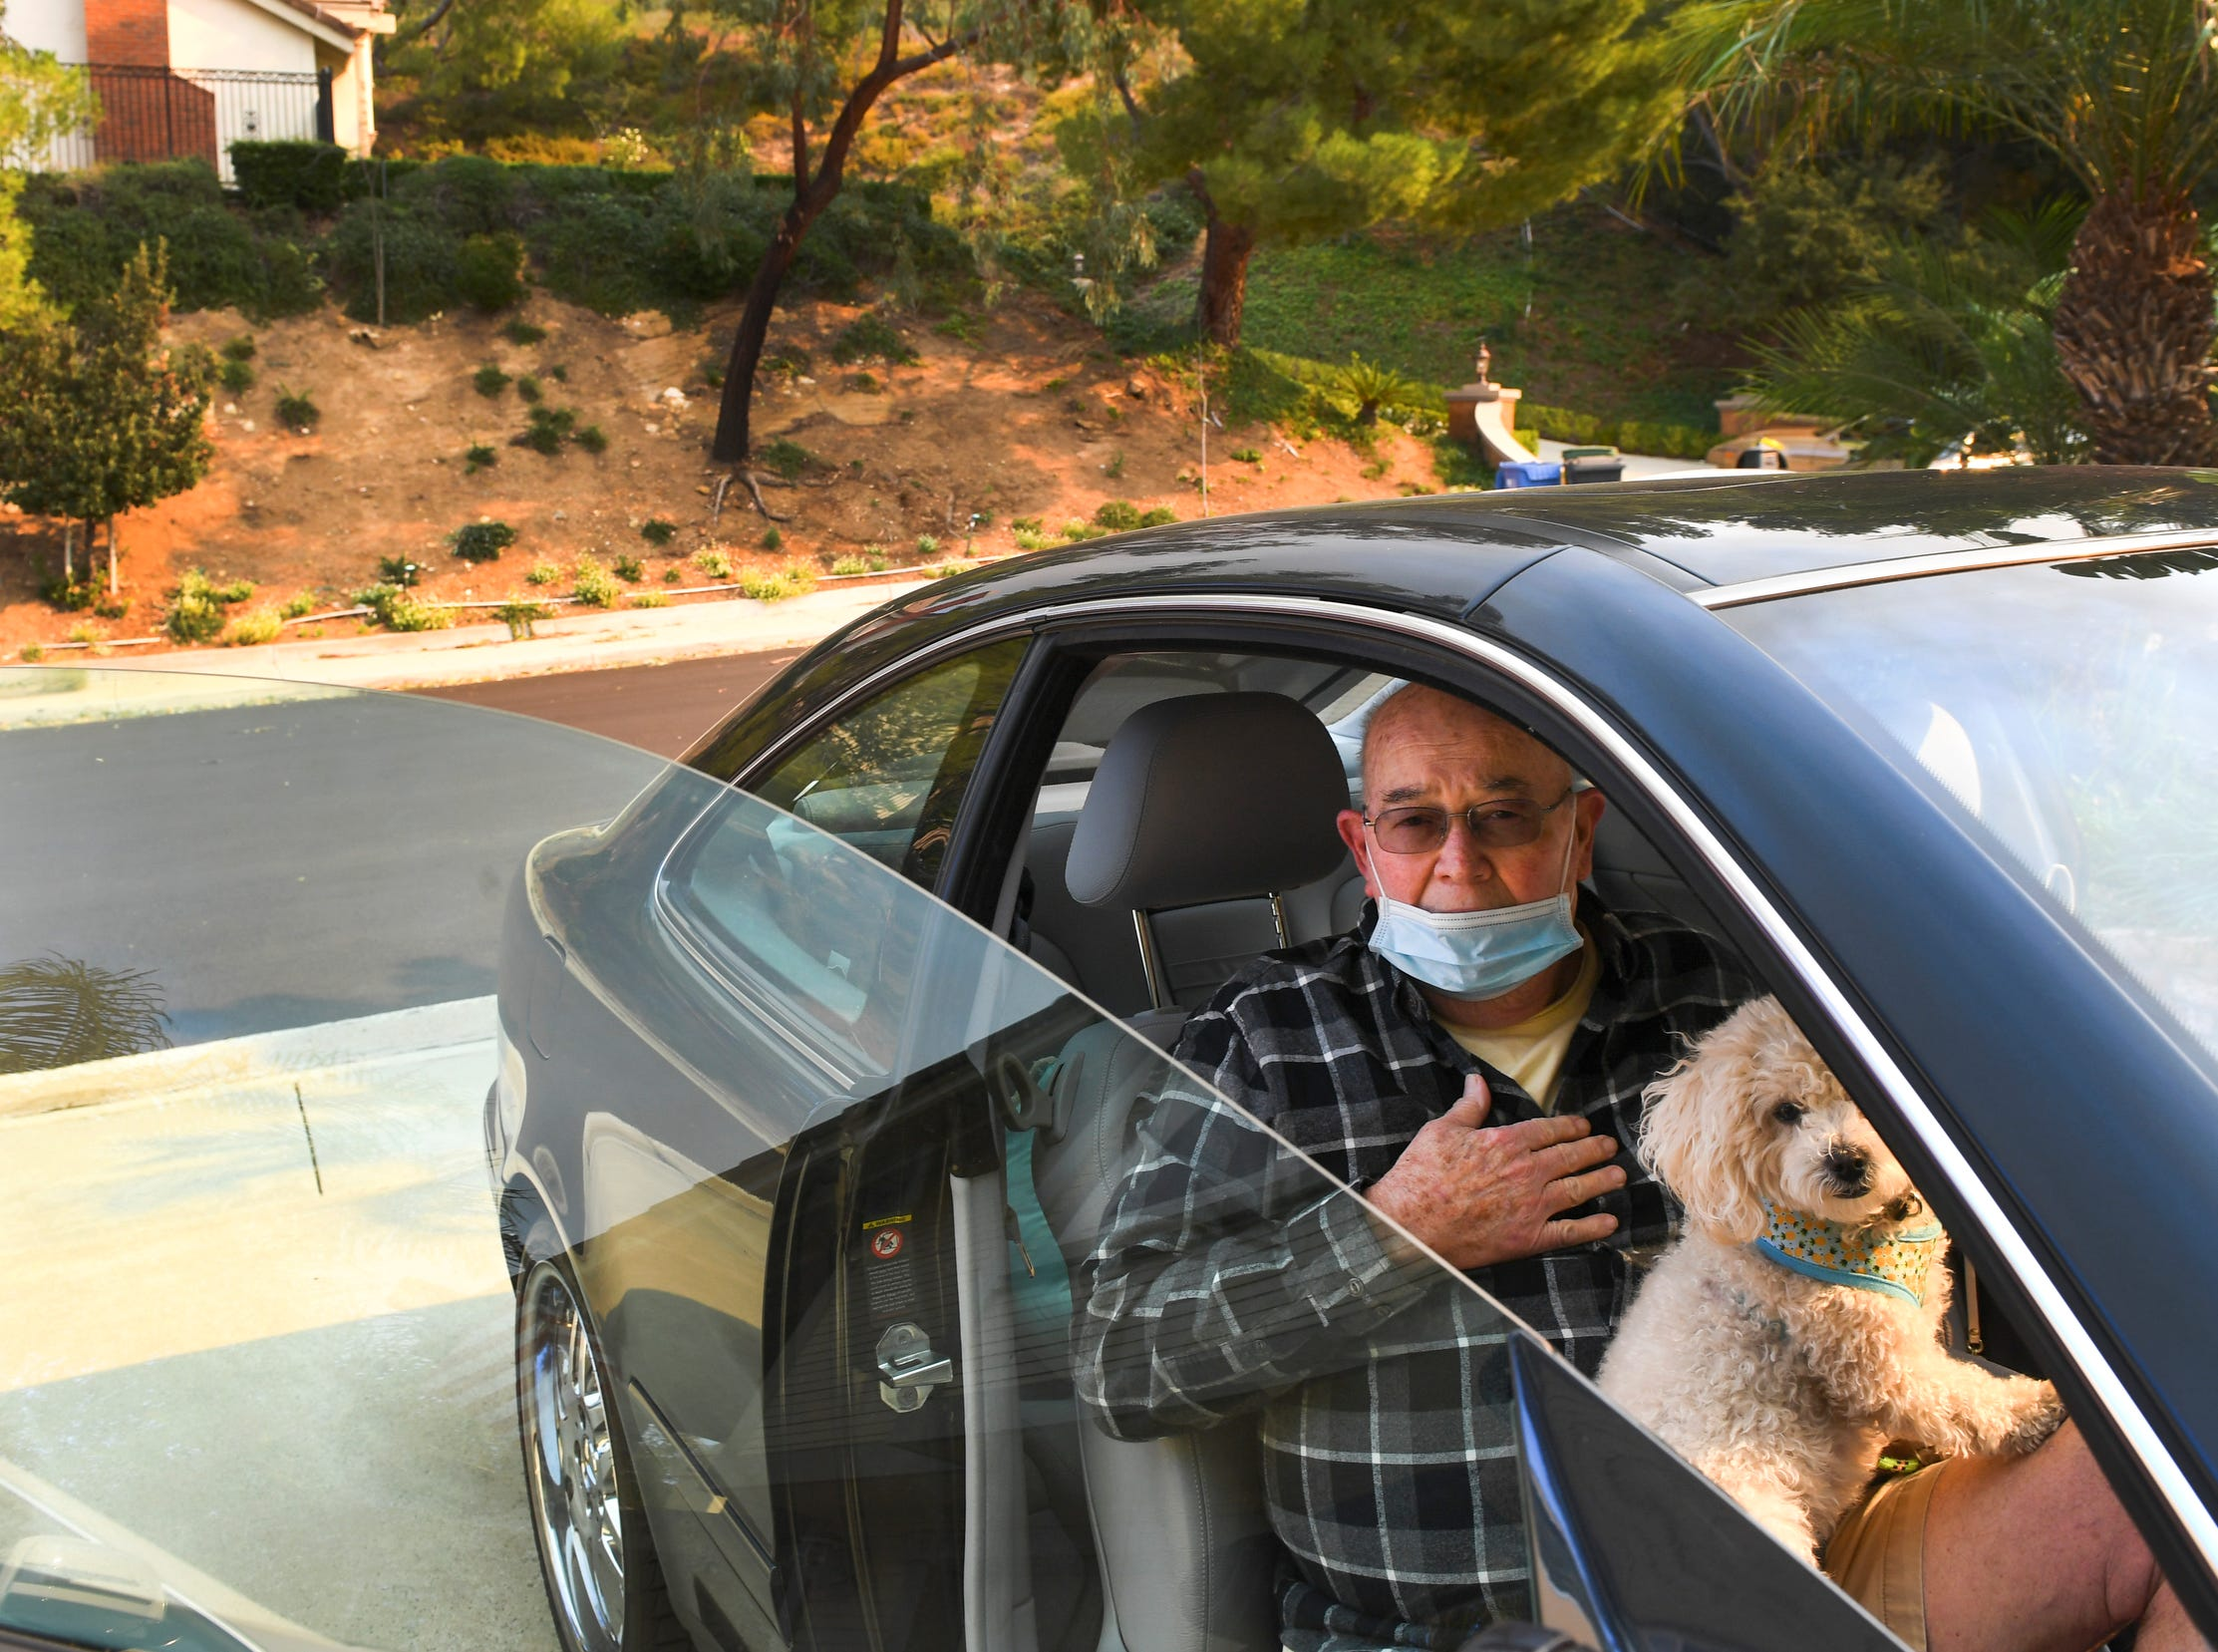 Jeff Riley waits to be evacuated from his home on Shadow Oaks Place, in Thousand Oaks, Calif., with the family dog.  Flames on a hill above the neighborhood caused residents to leave their homes.